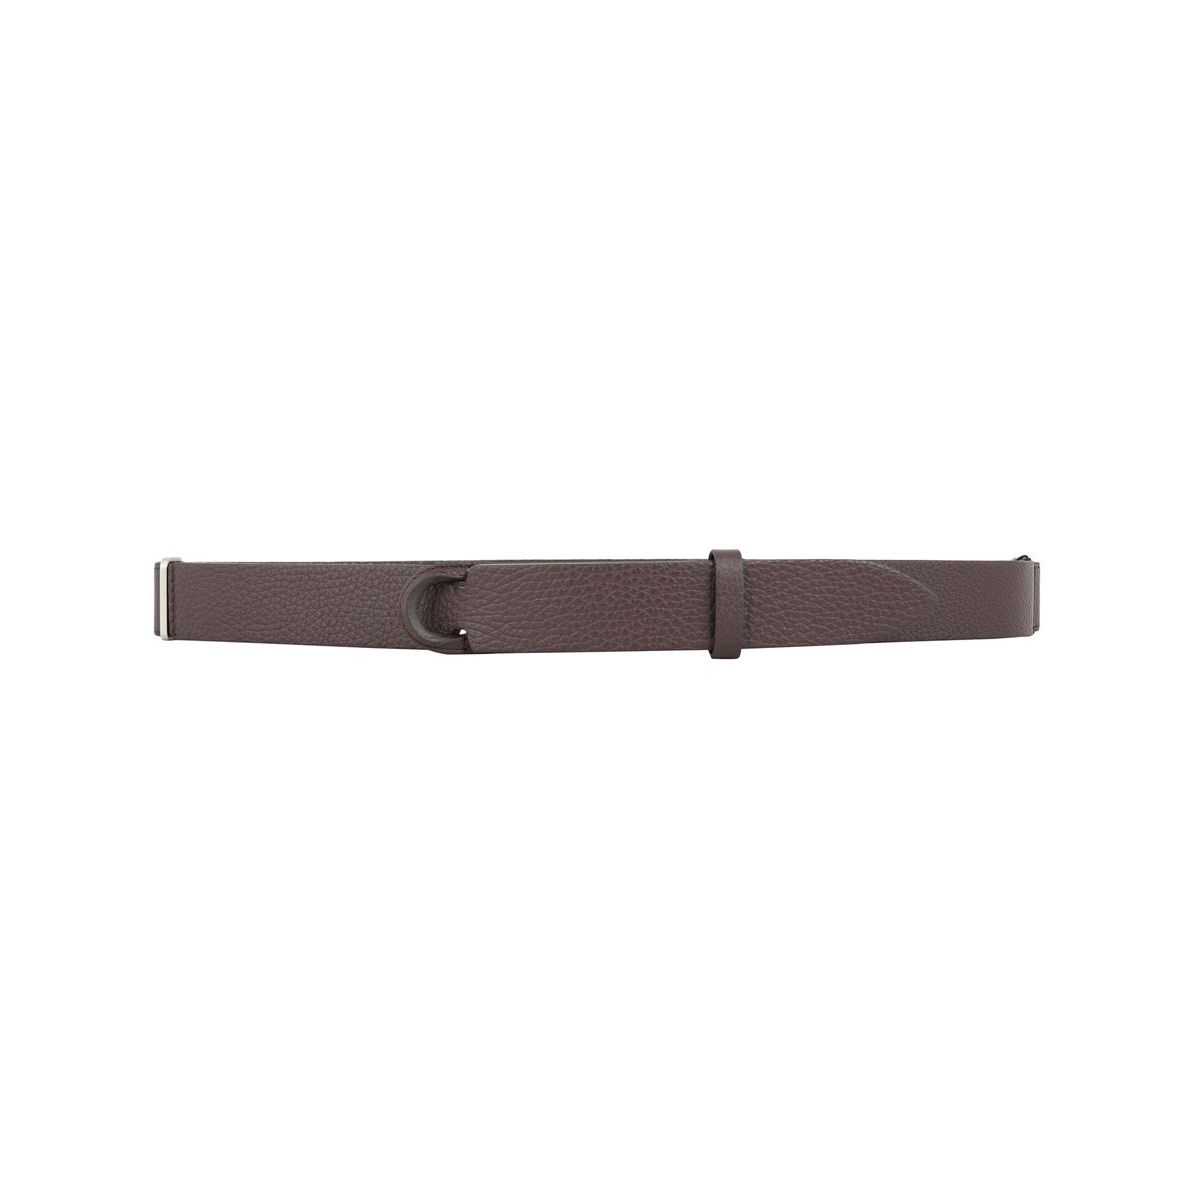 NO BUCKLE belt in hammered leather Ebony Orciani